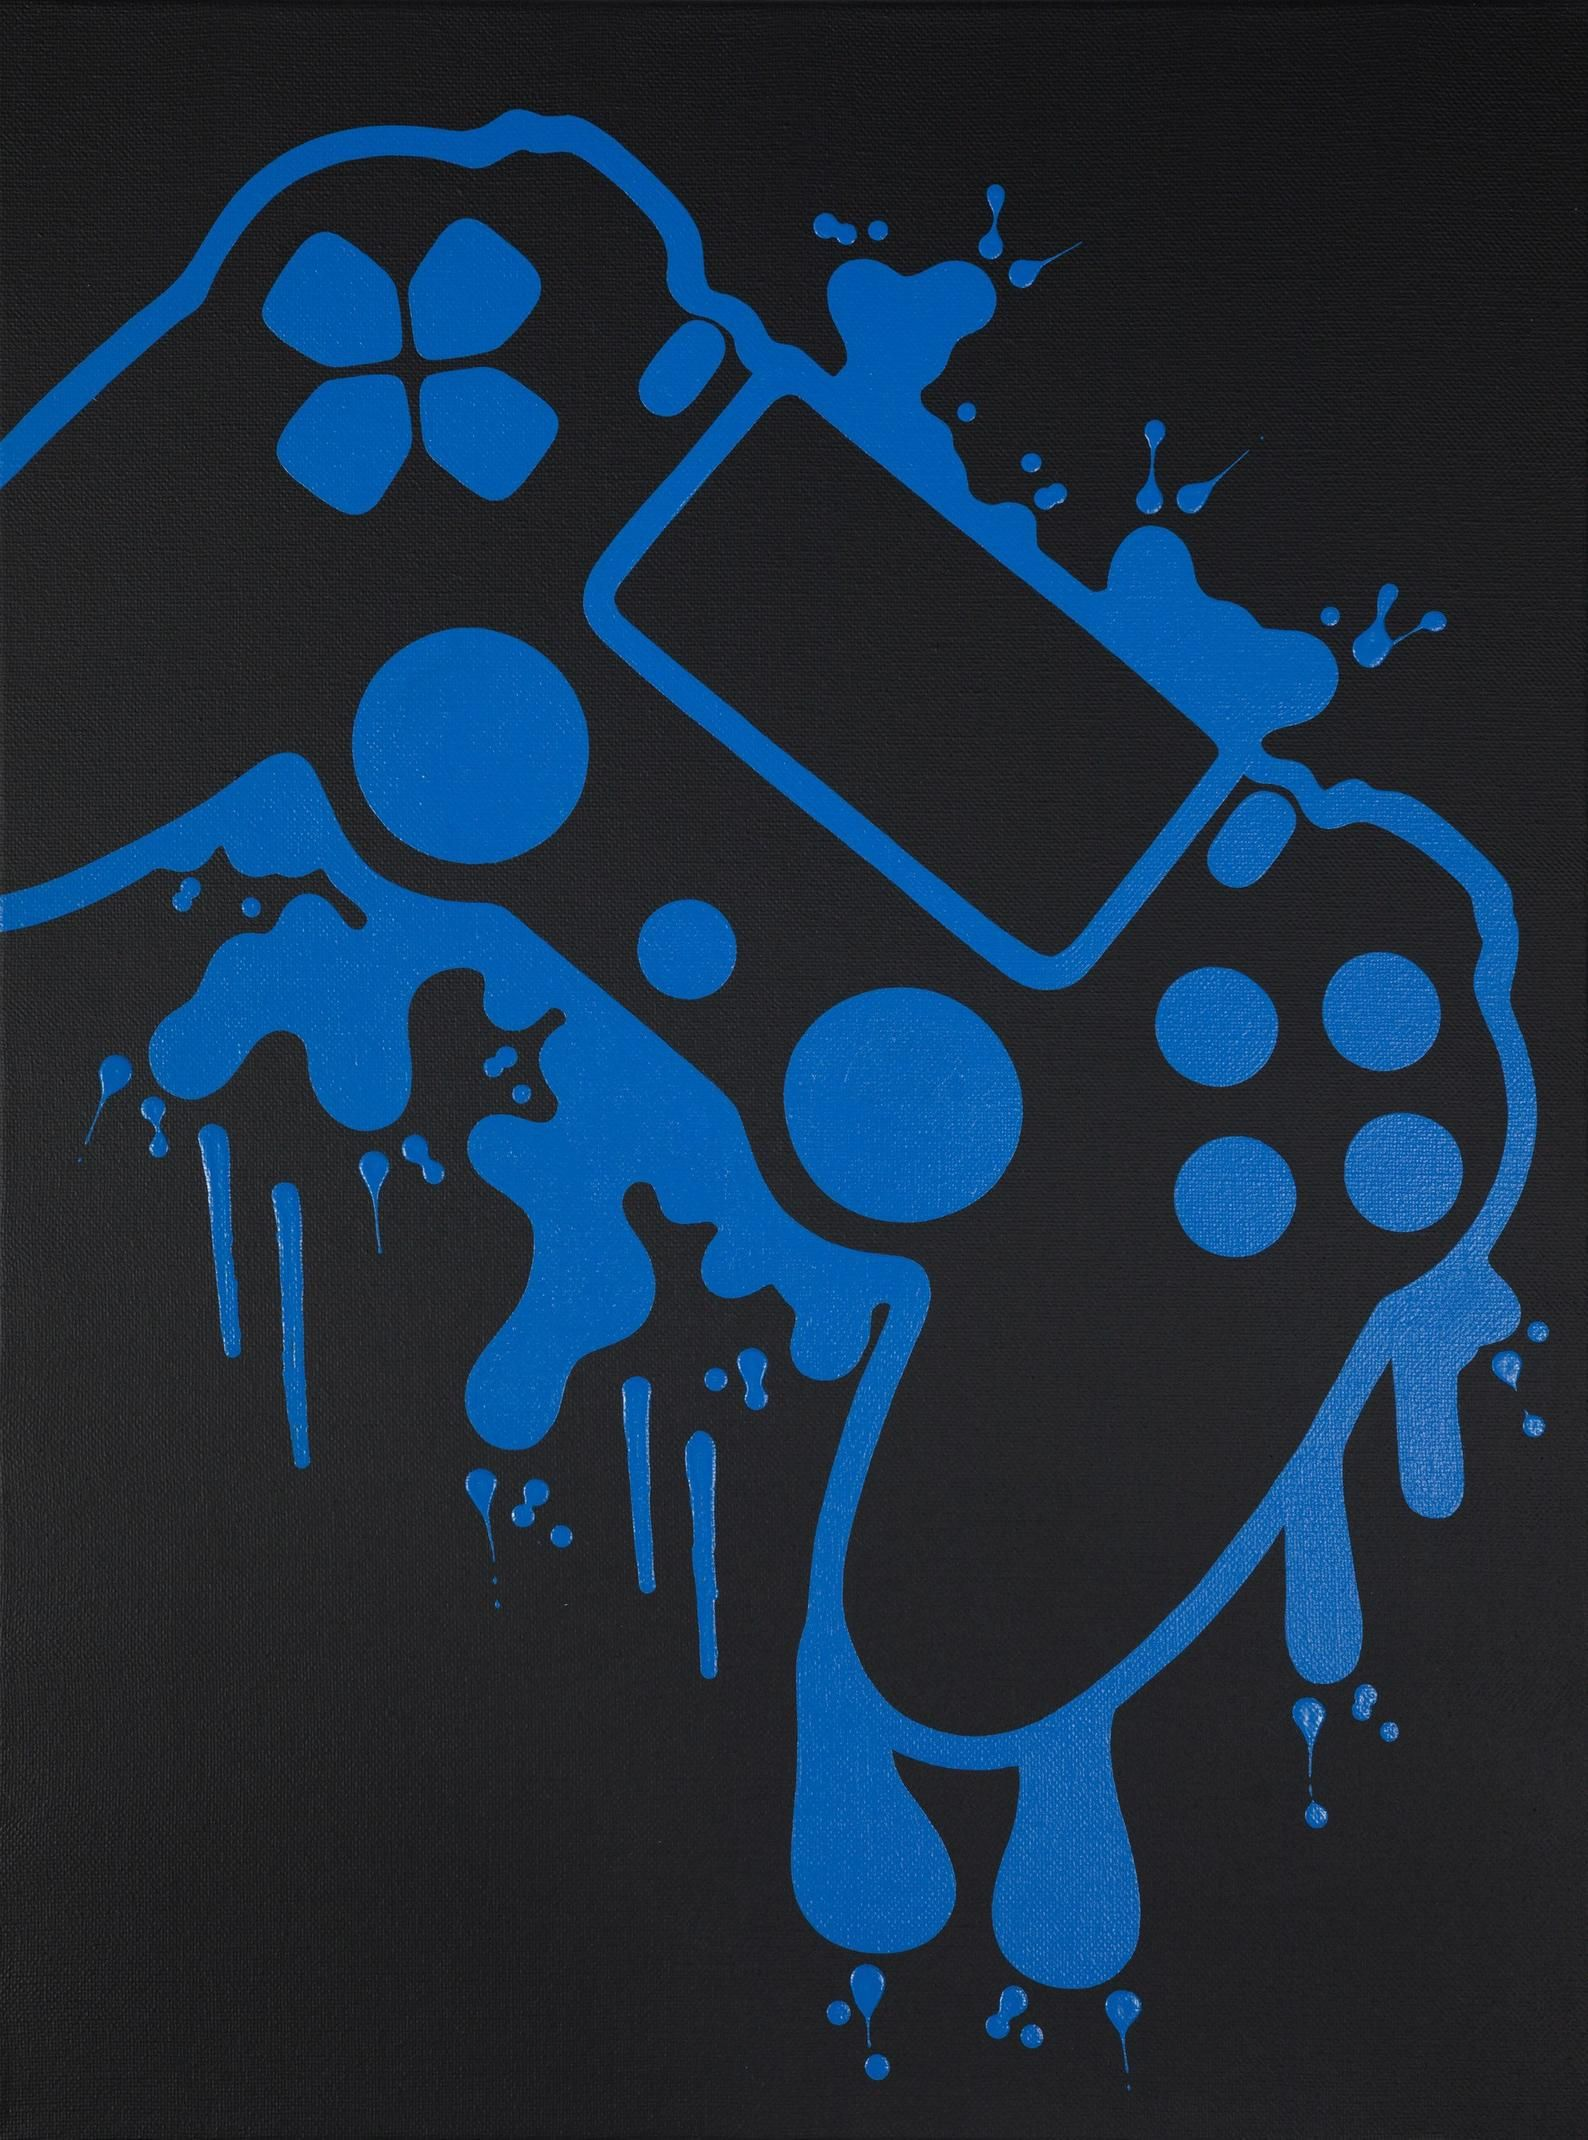 PlayStation 4 Video Game Controller Painting, Video Game